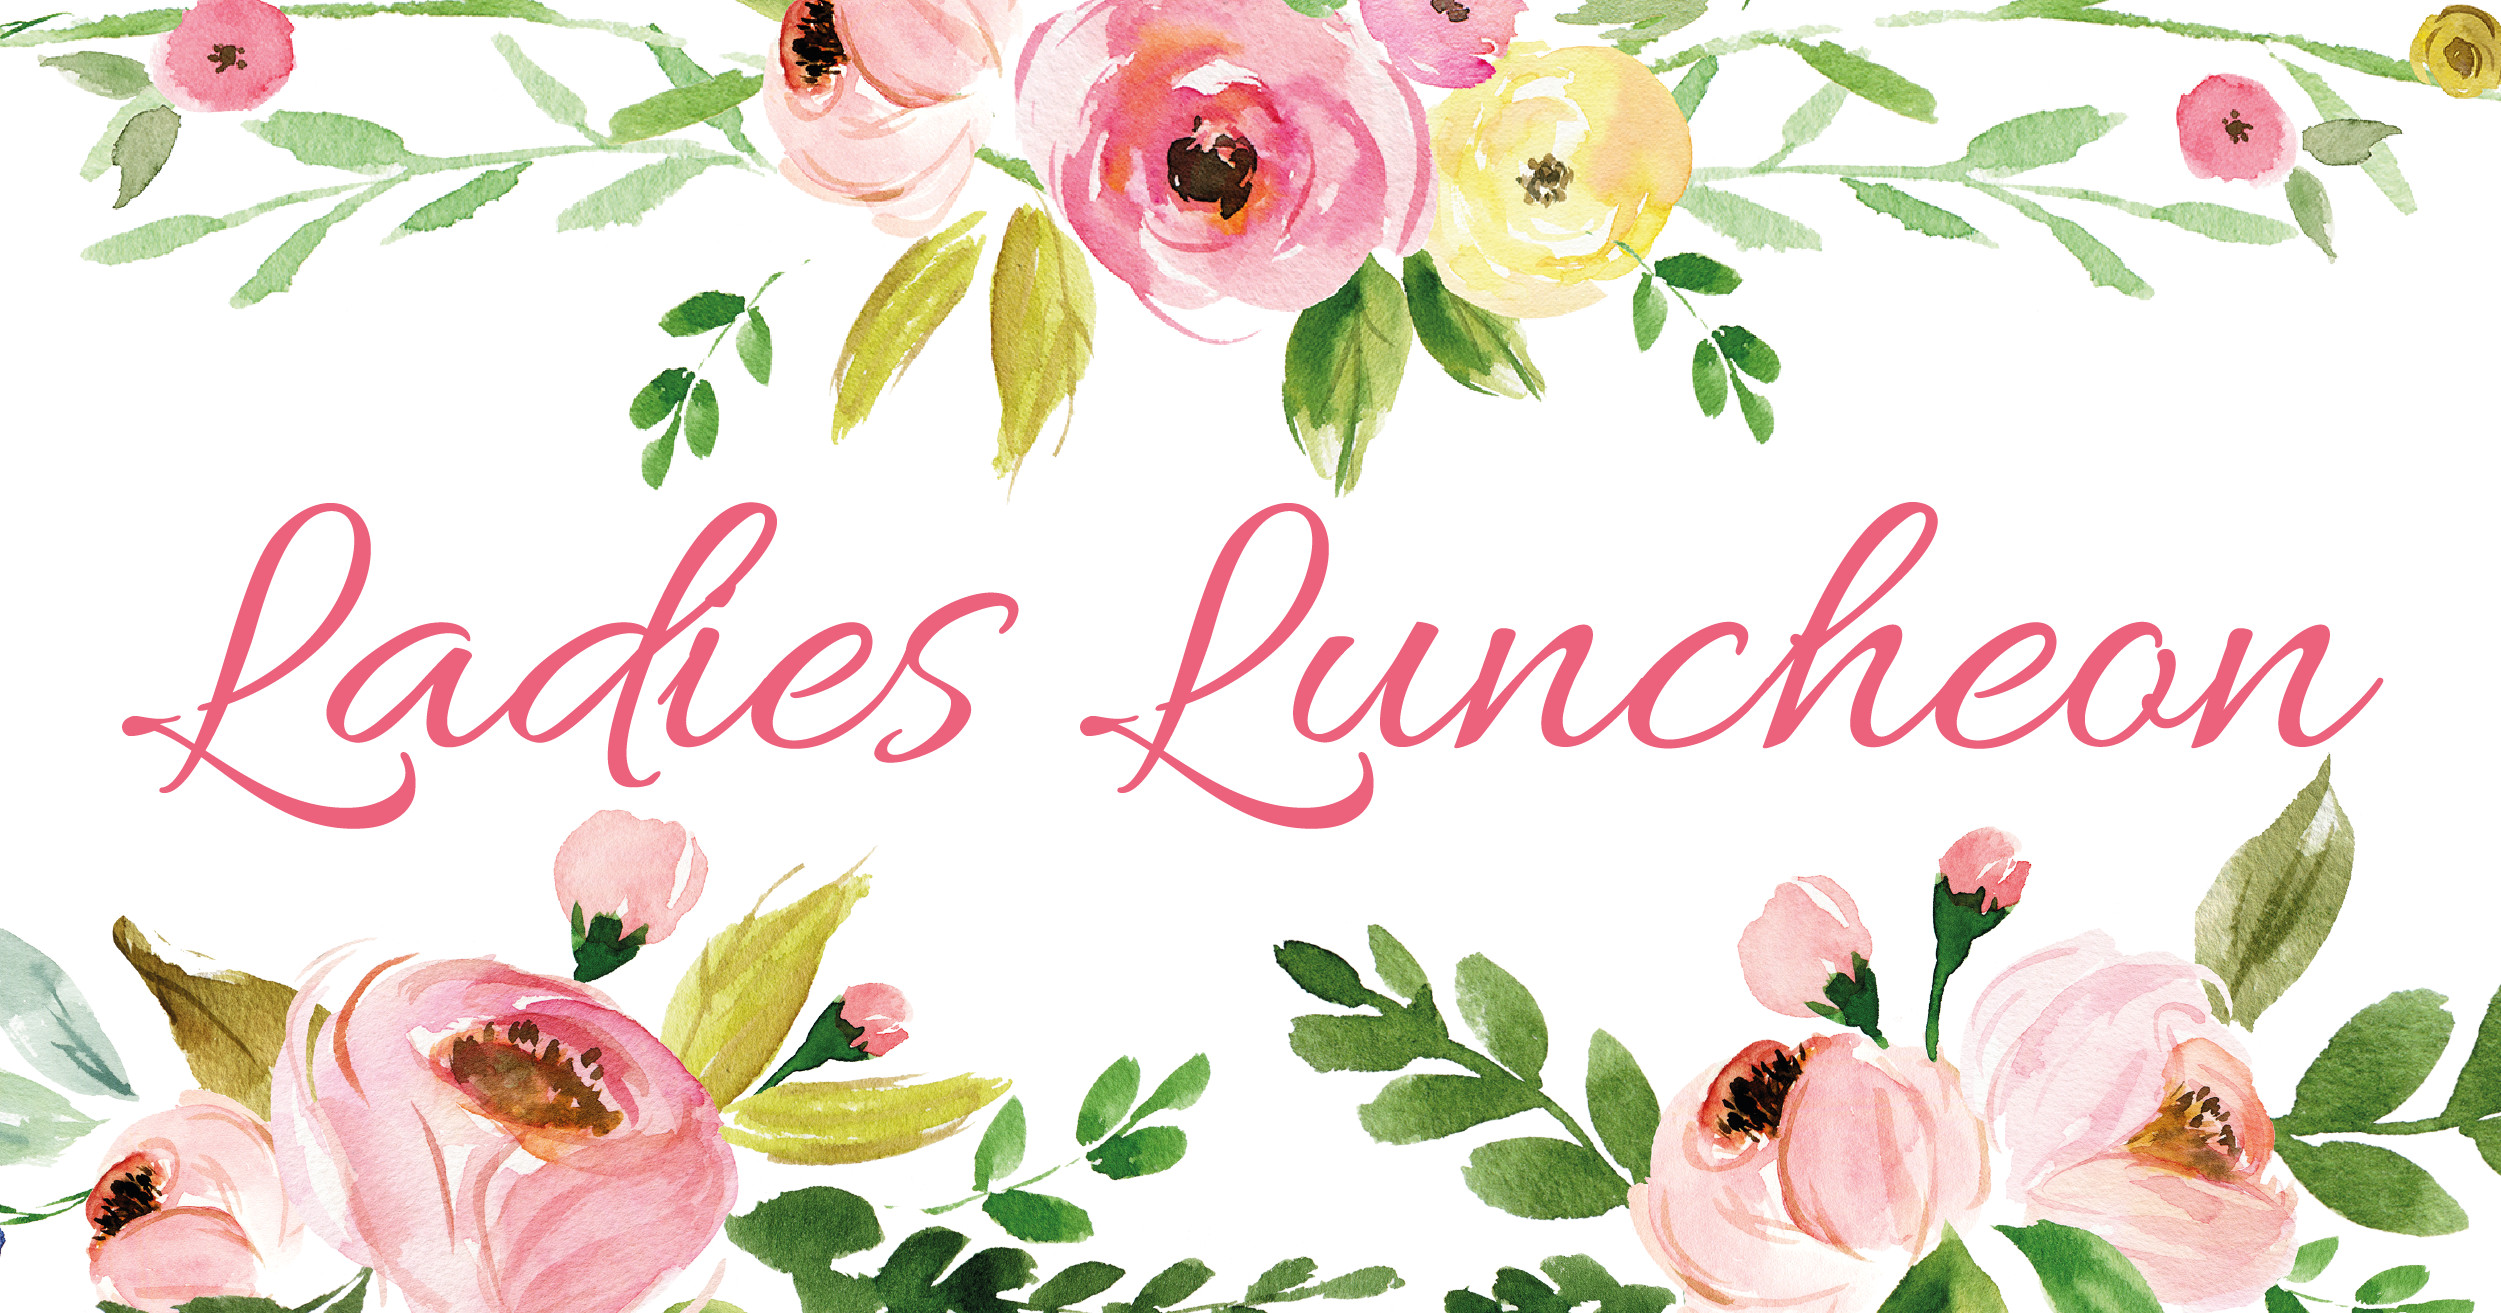 Ladies Luncheon Images October 2017